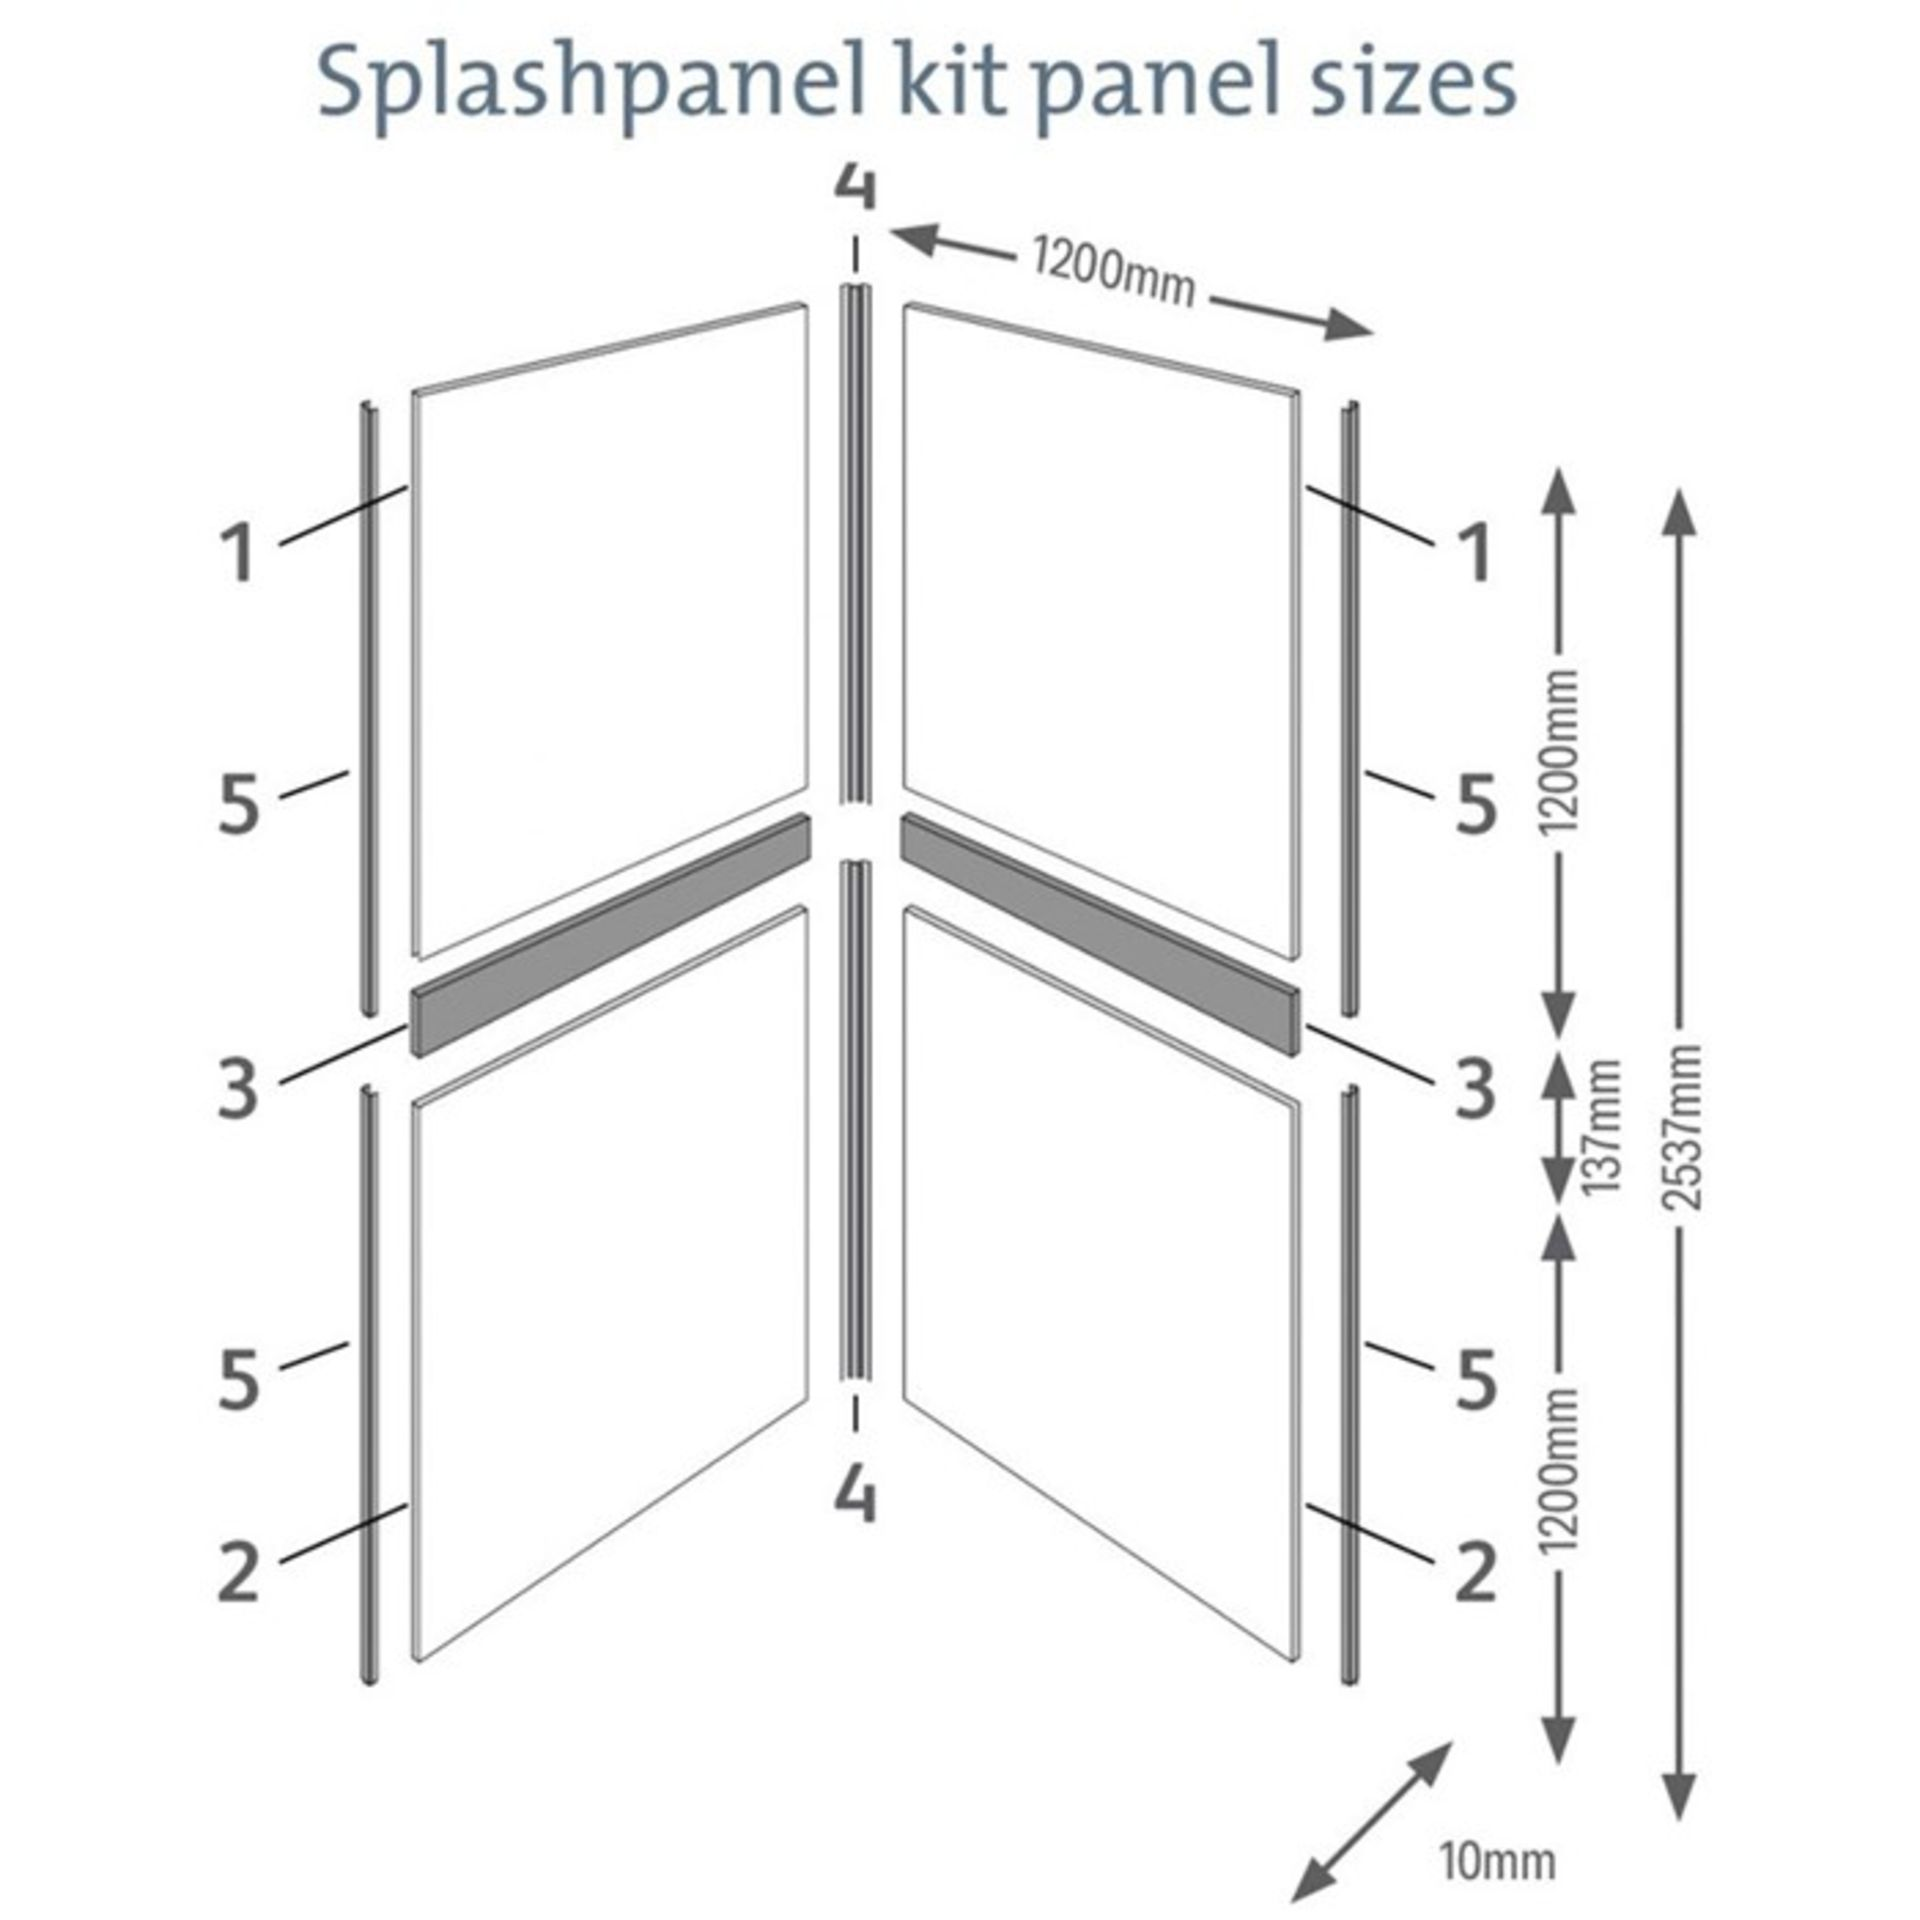 12x Splash Panel 2 sided shower wall kit in Sandstone, new and boxed, each kit contains 2 - Image 3 of 3